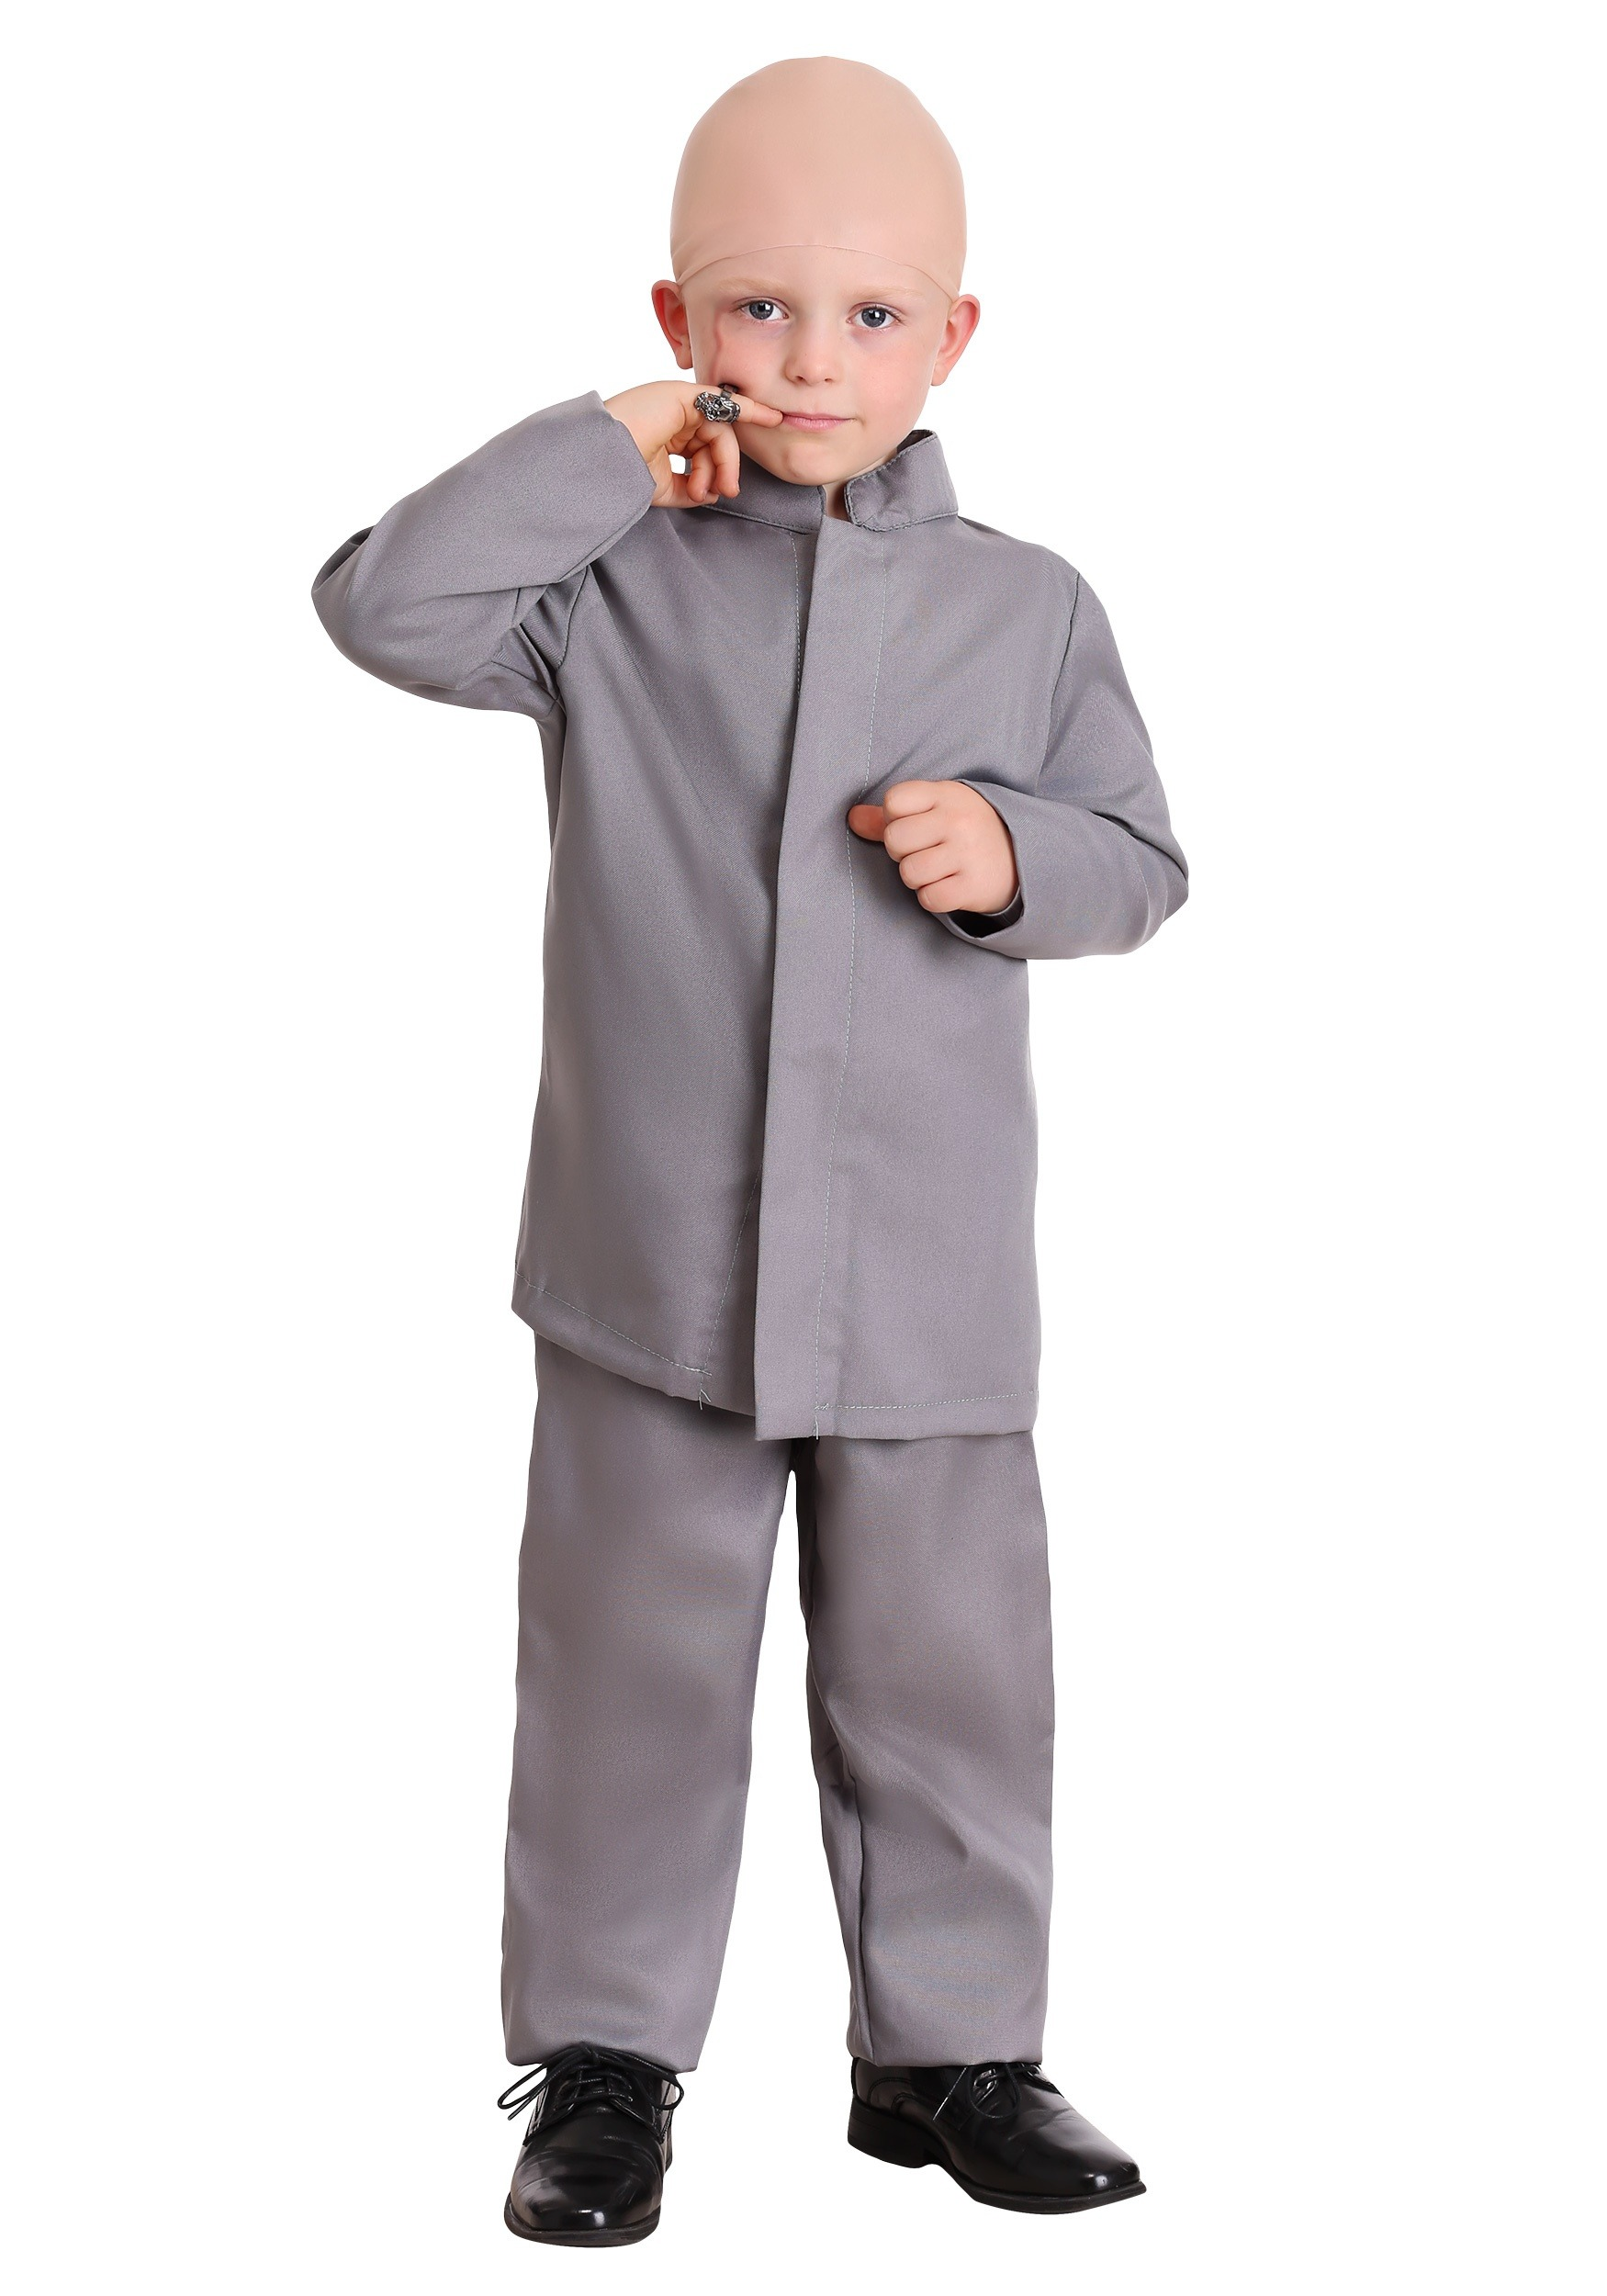 Toddler Evil Lil Me Costume  sc 1 st  Halloween Costume & Toddler Evil Lil Me Costume - Kids Funny Movie Character Costumes